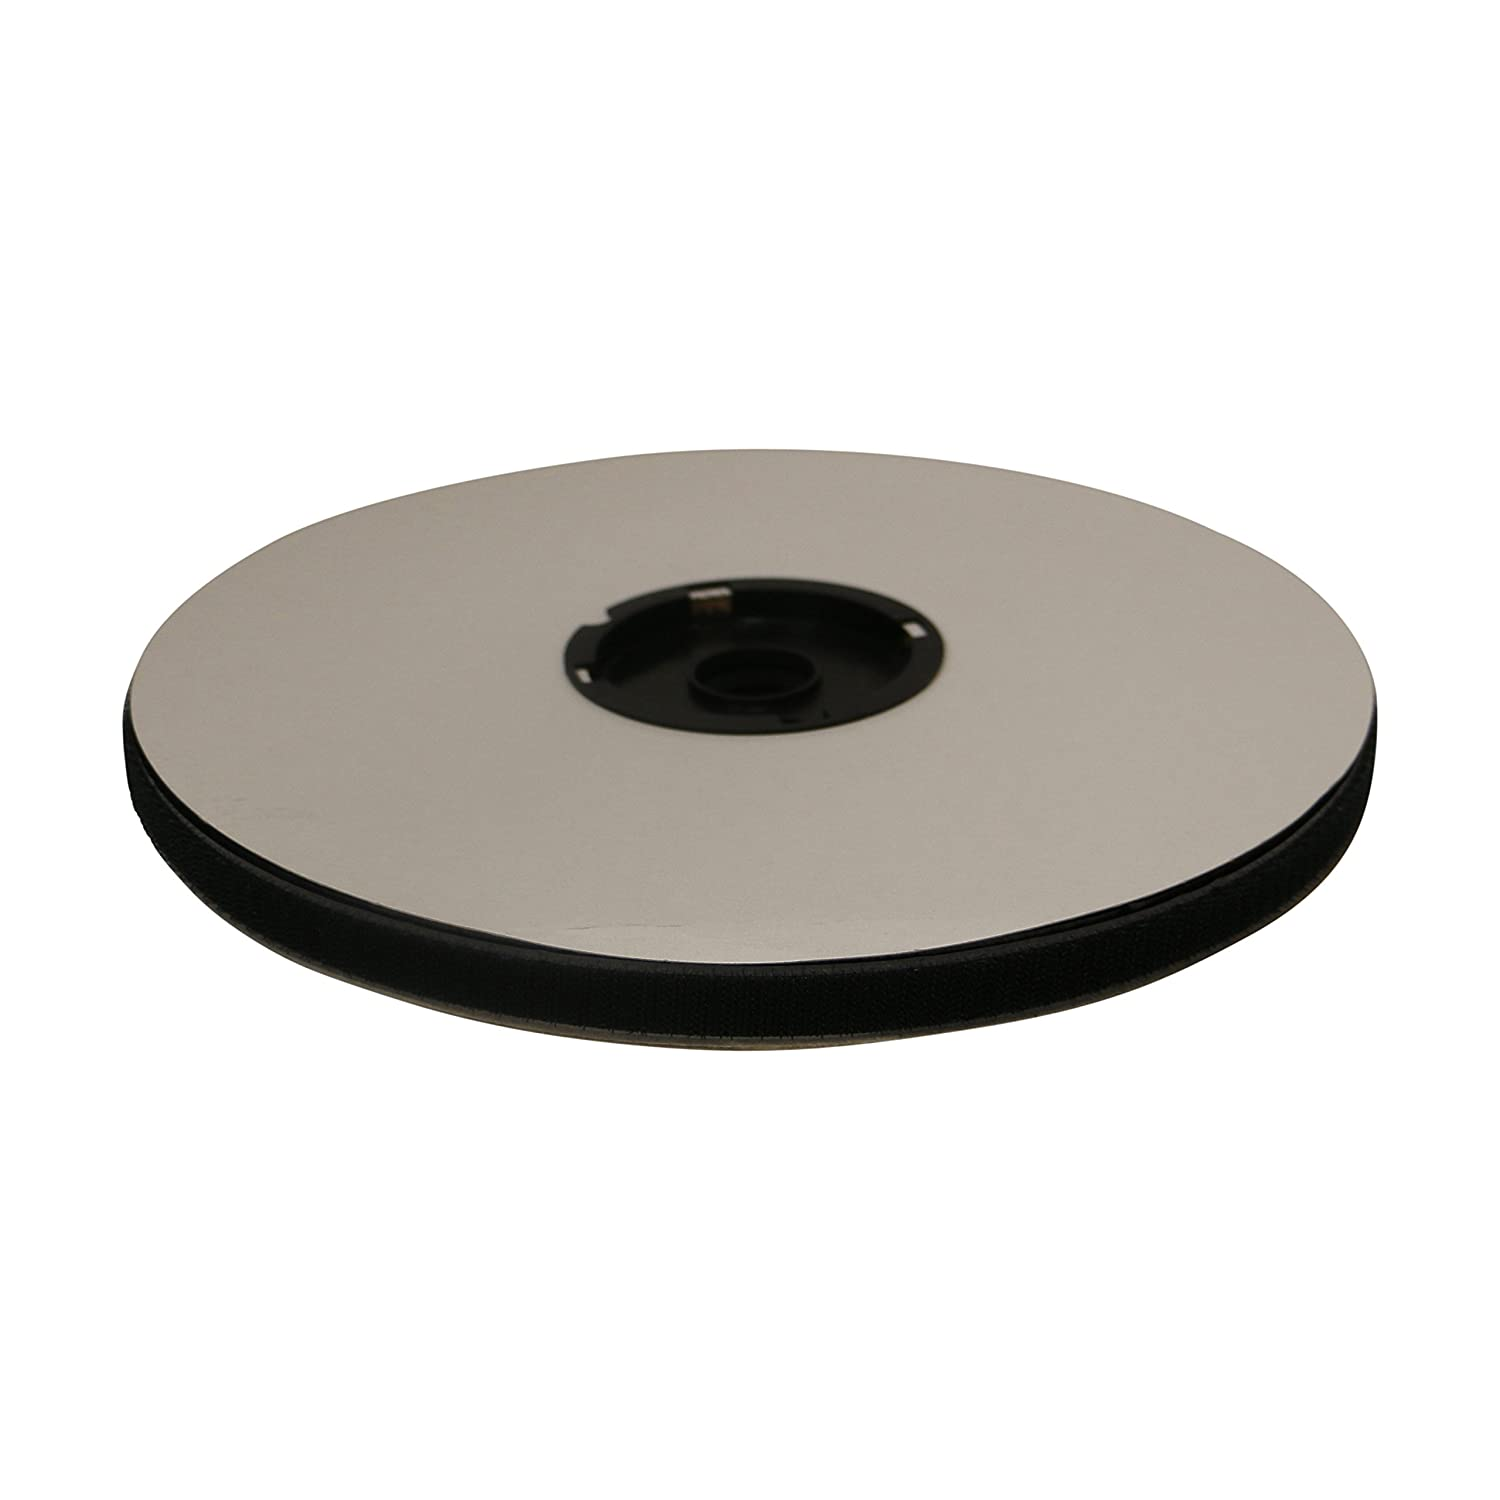 FindTape HL74-R/BLK0575H HL74-R Adhesive-Backed Hook-Side Only Rolls: 1/2' x 75 ft, Black